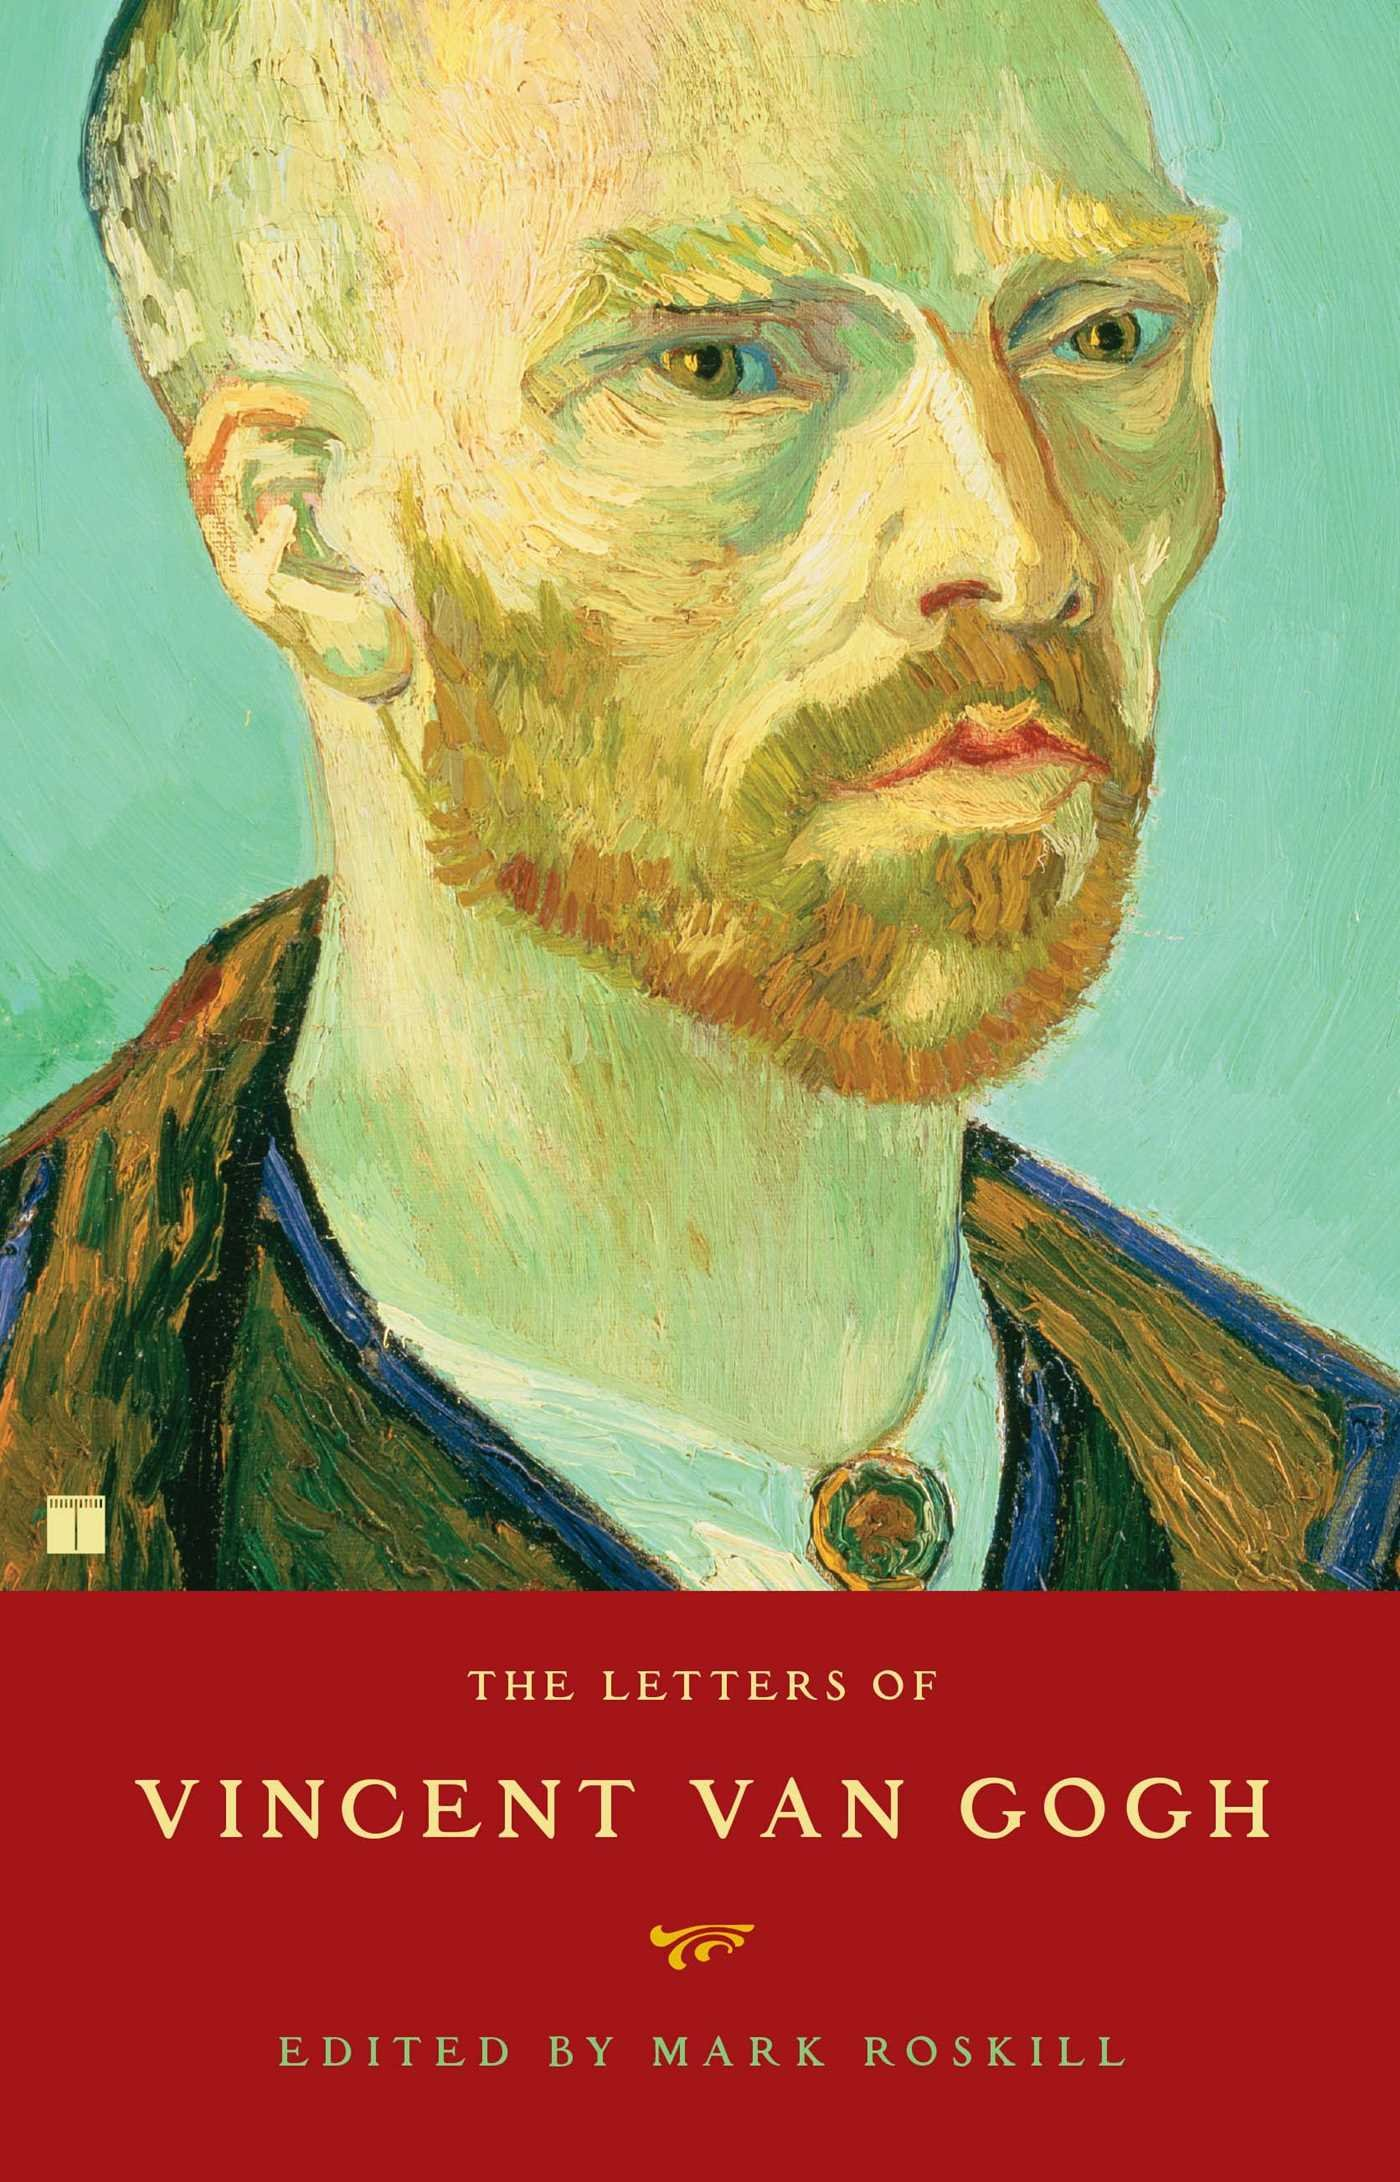 vincent van gogh on england compiled from his letters